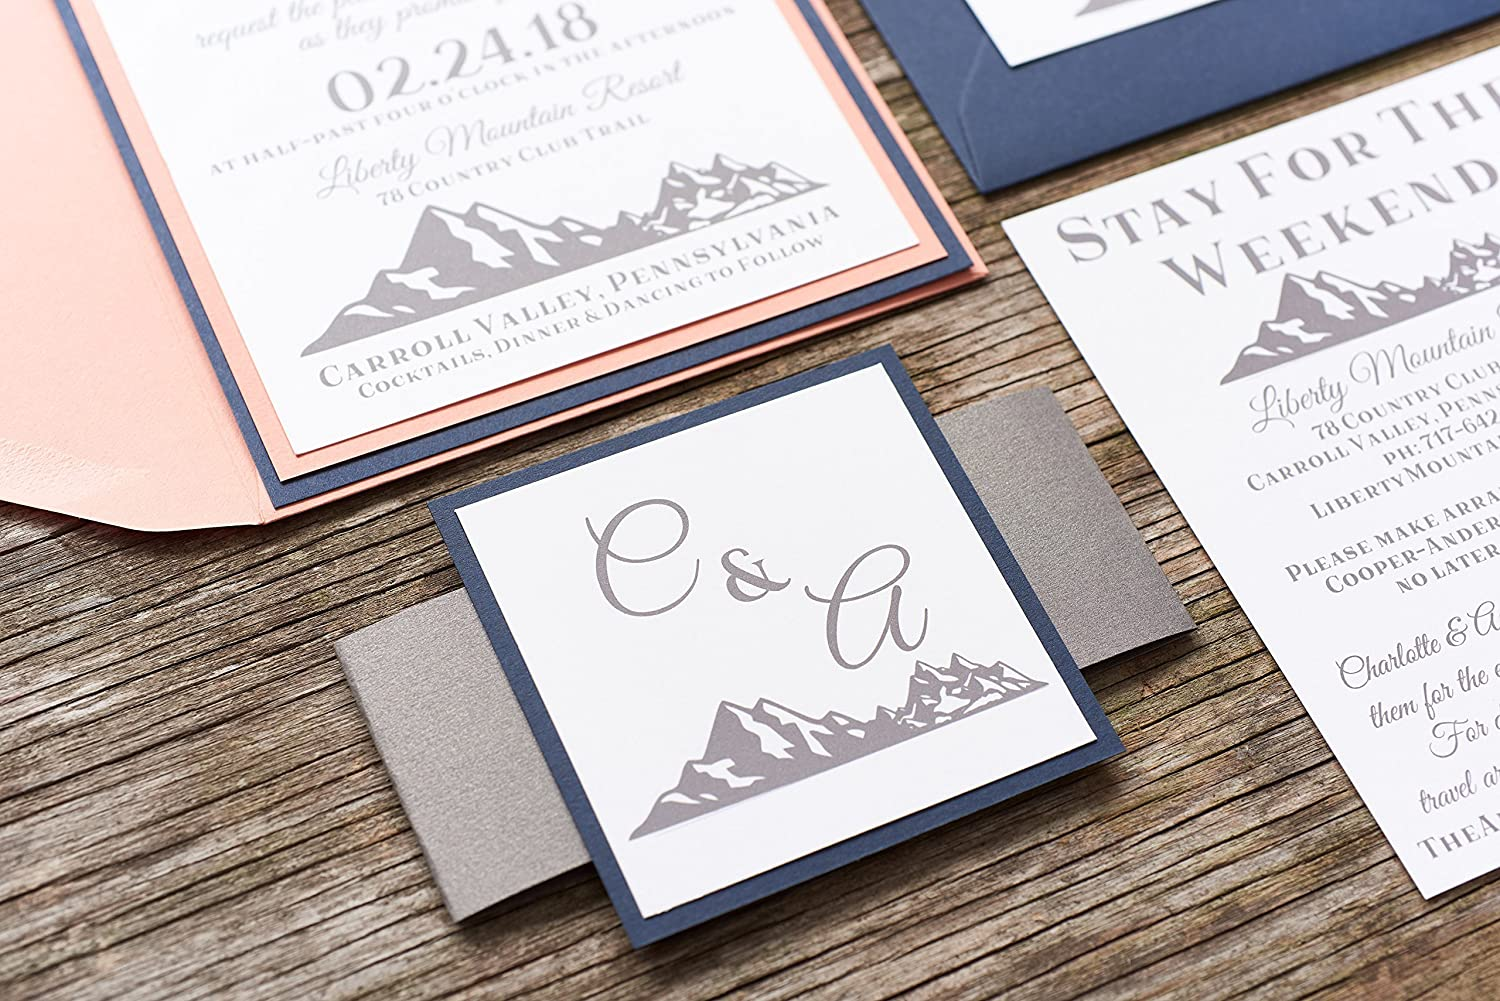 Amazon.com: Personalized Mountain Wedding Invitation Card Suite with ...